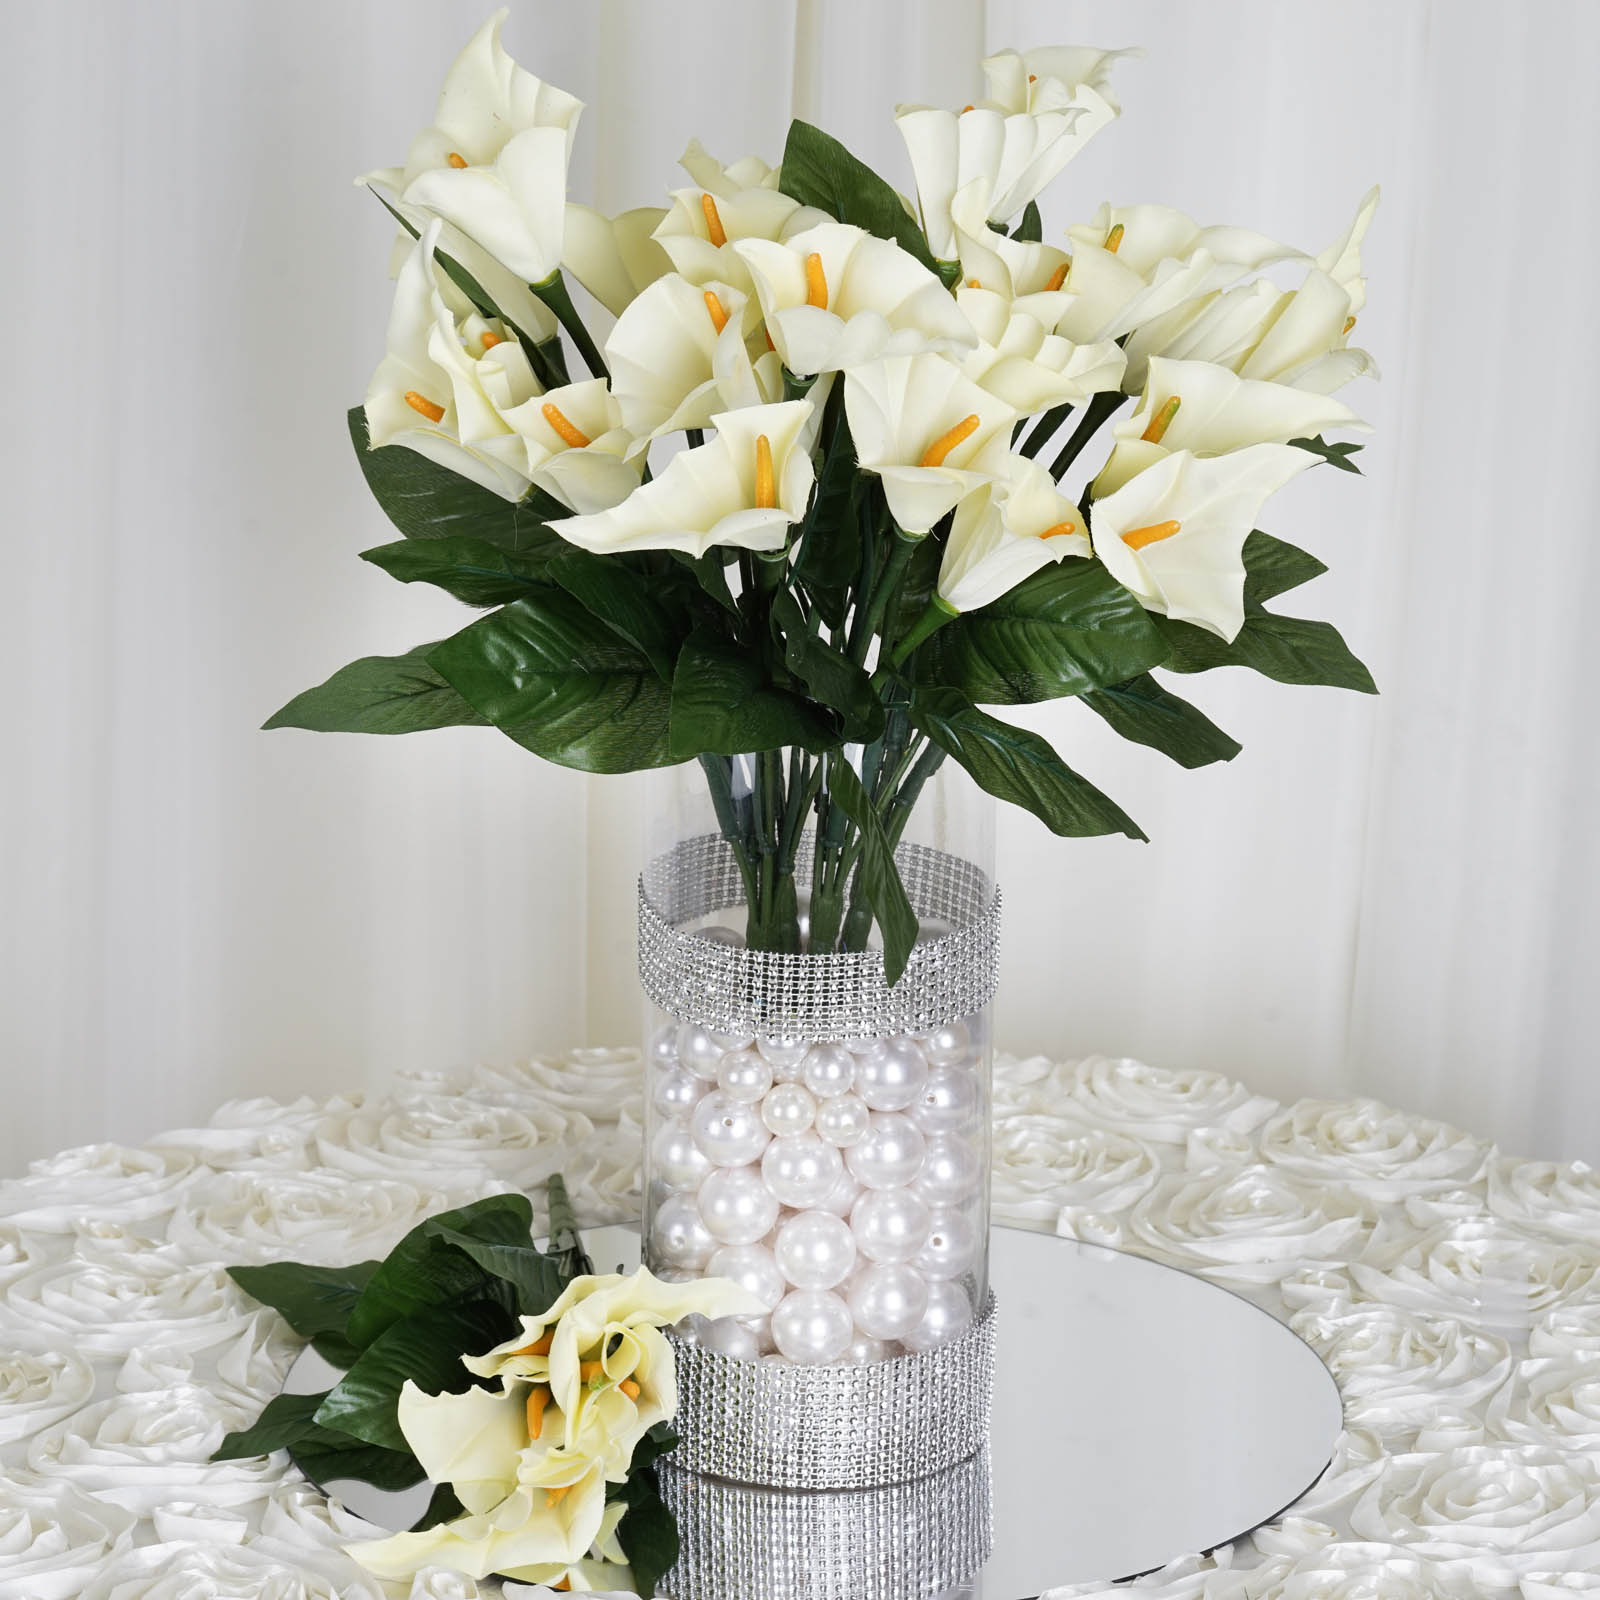 168 Silk Calla Lily Flowers for Wedding Bouquets Centerpieces ...